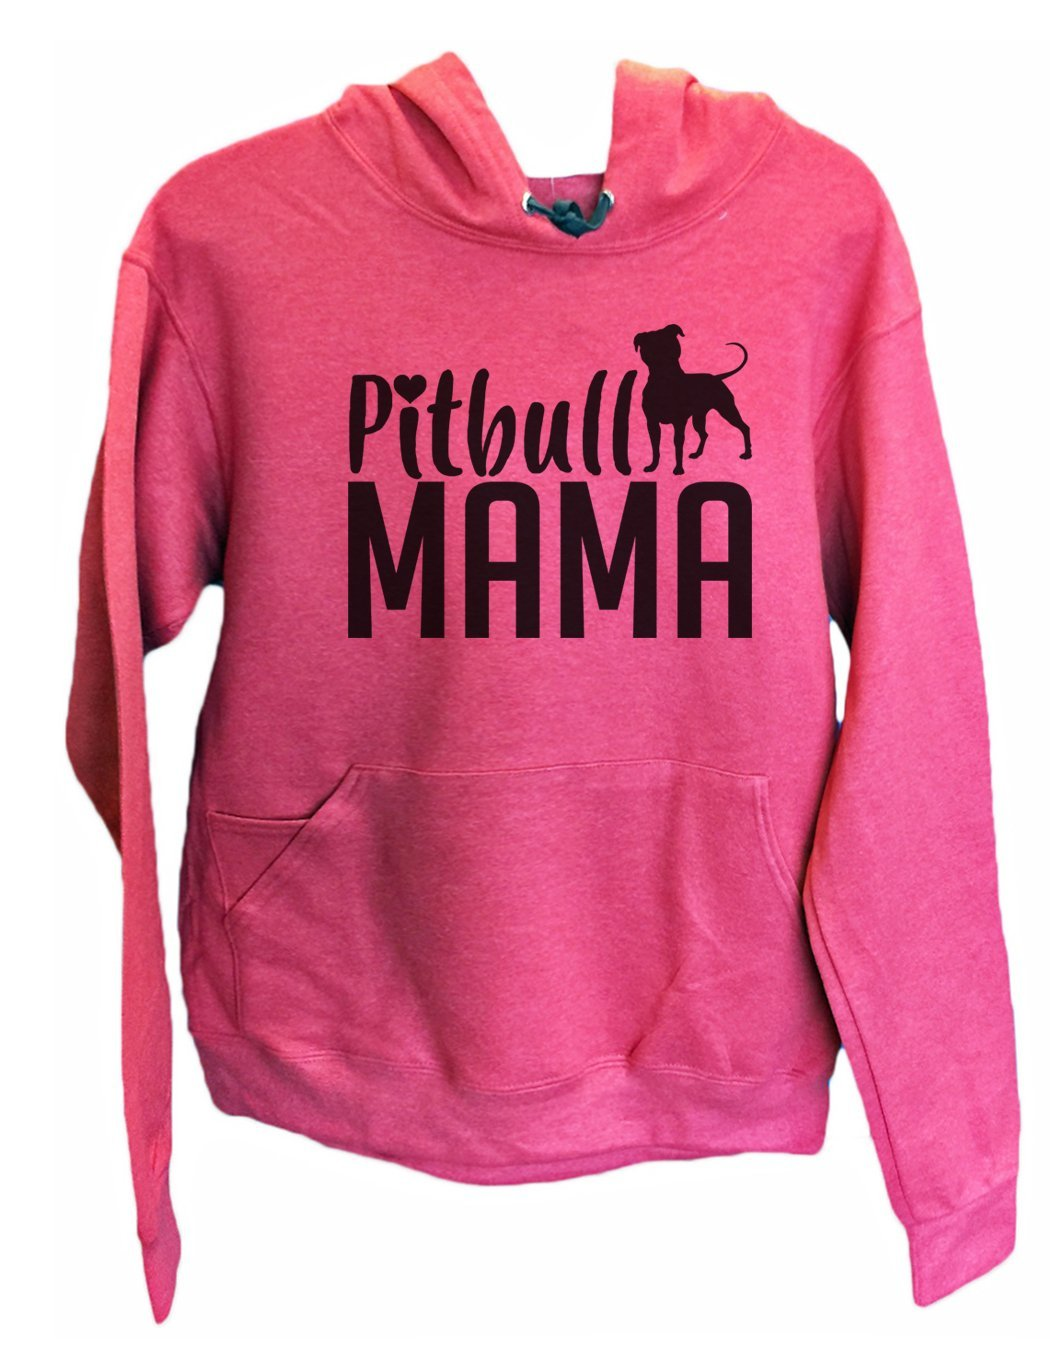 UNISEX HOODIE - Pitbull Mama - FUNNY MENS AND WOMENS HOODED SWEATSHIRTS - 2180 Funny Shirt Small / Cranberry Red